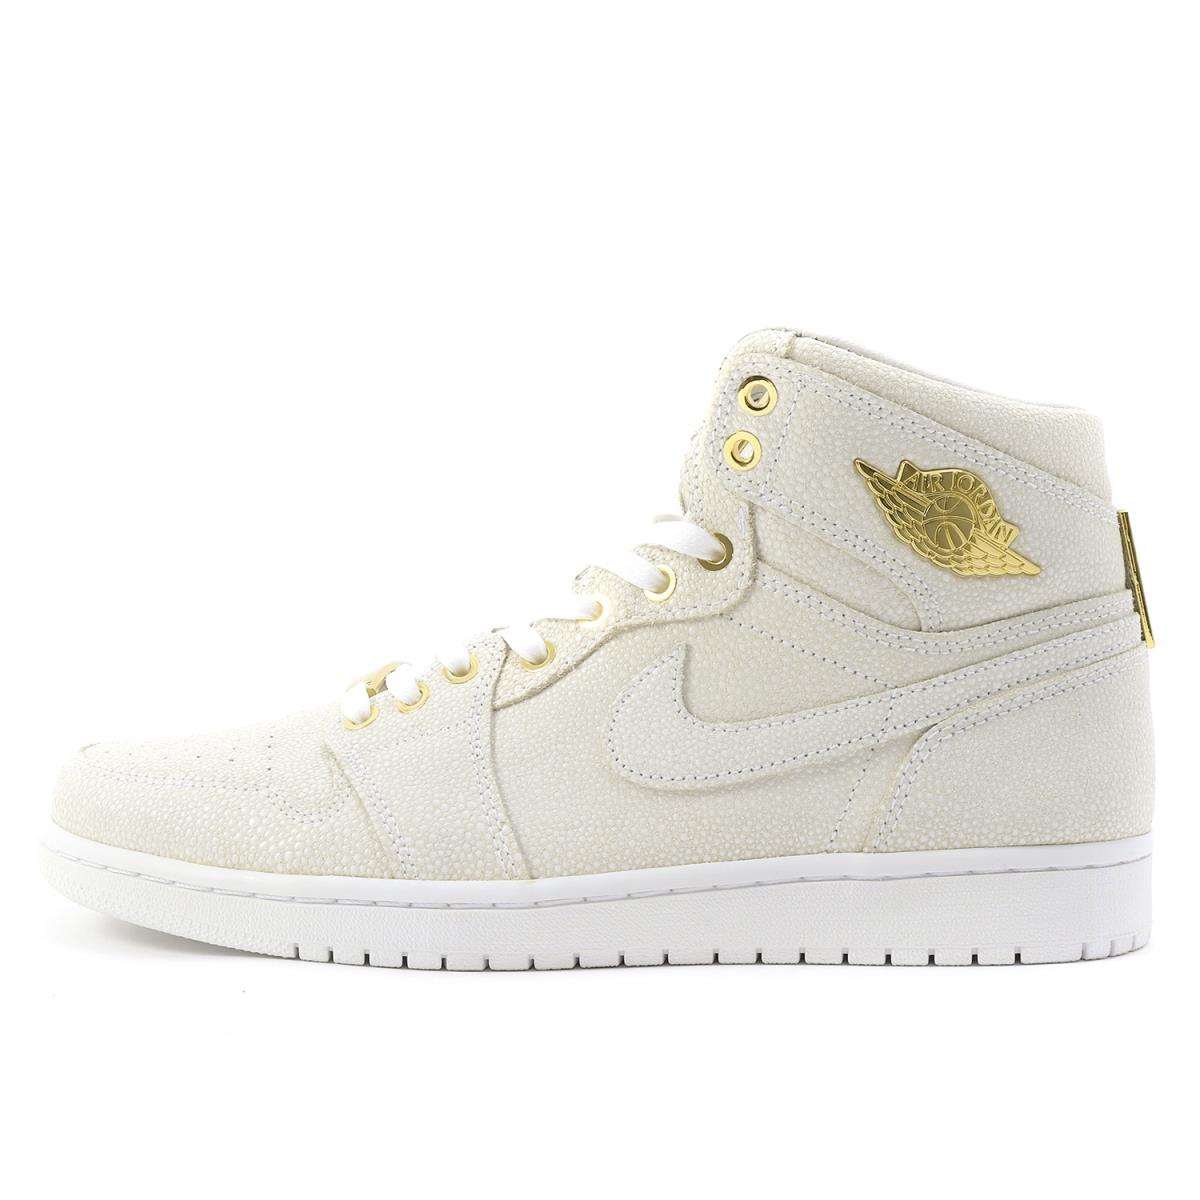 Metallic 075 130White Us10 X 5 5cm Jordan NikenikeJapanese Air Pinnacle705 Release 28 Gold 1 Non rQtsohdBxC